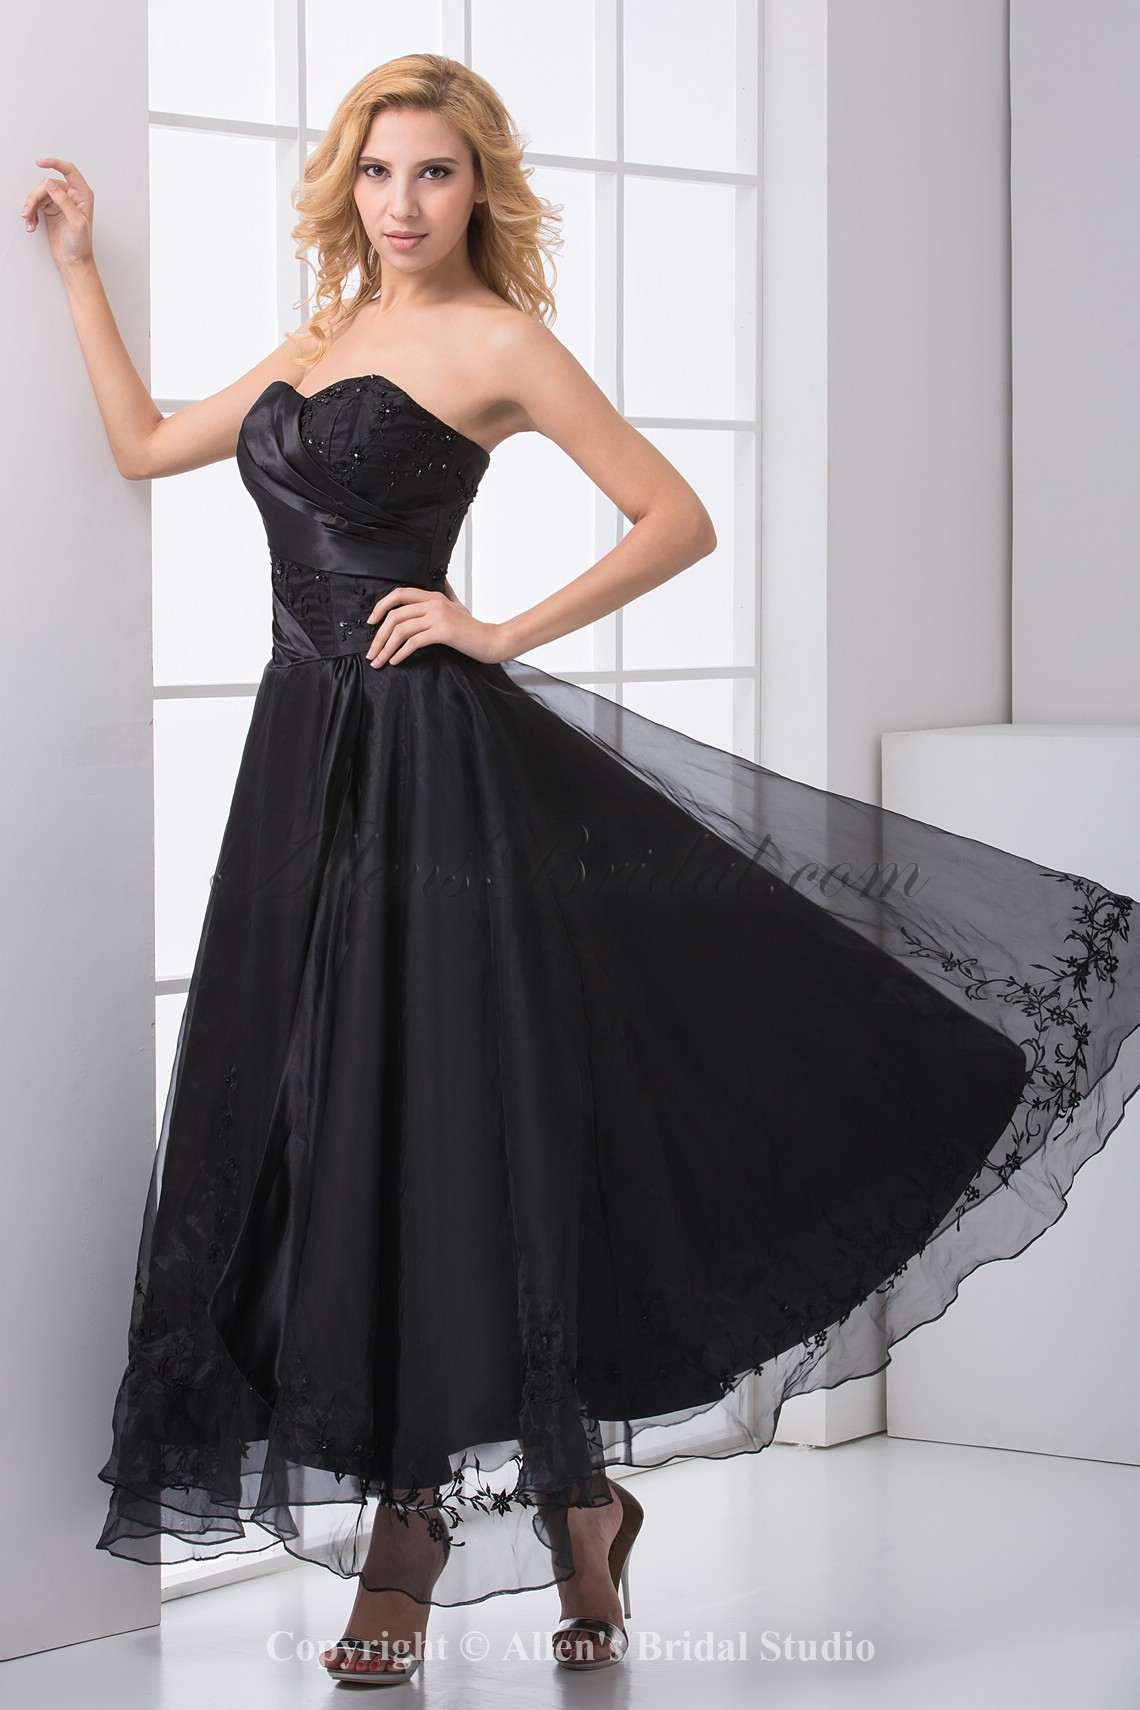 /177-1412/organza-sweetheart-a-line-ankle-length-embroidered-prom-dress.jpg